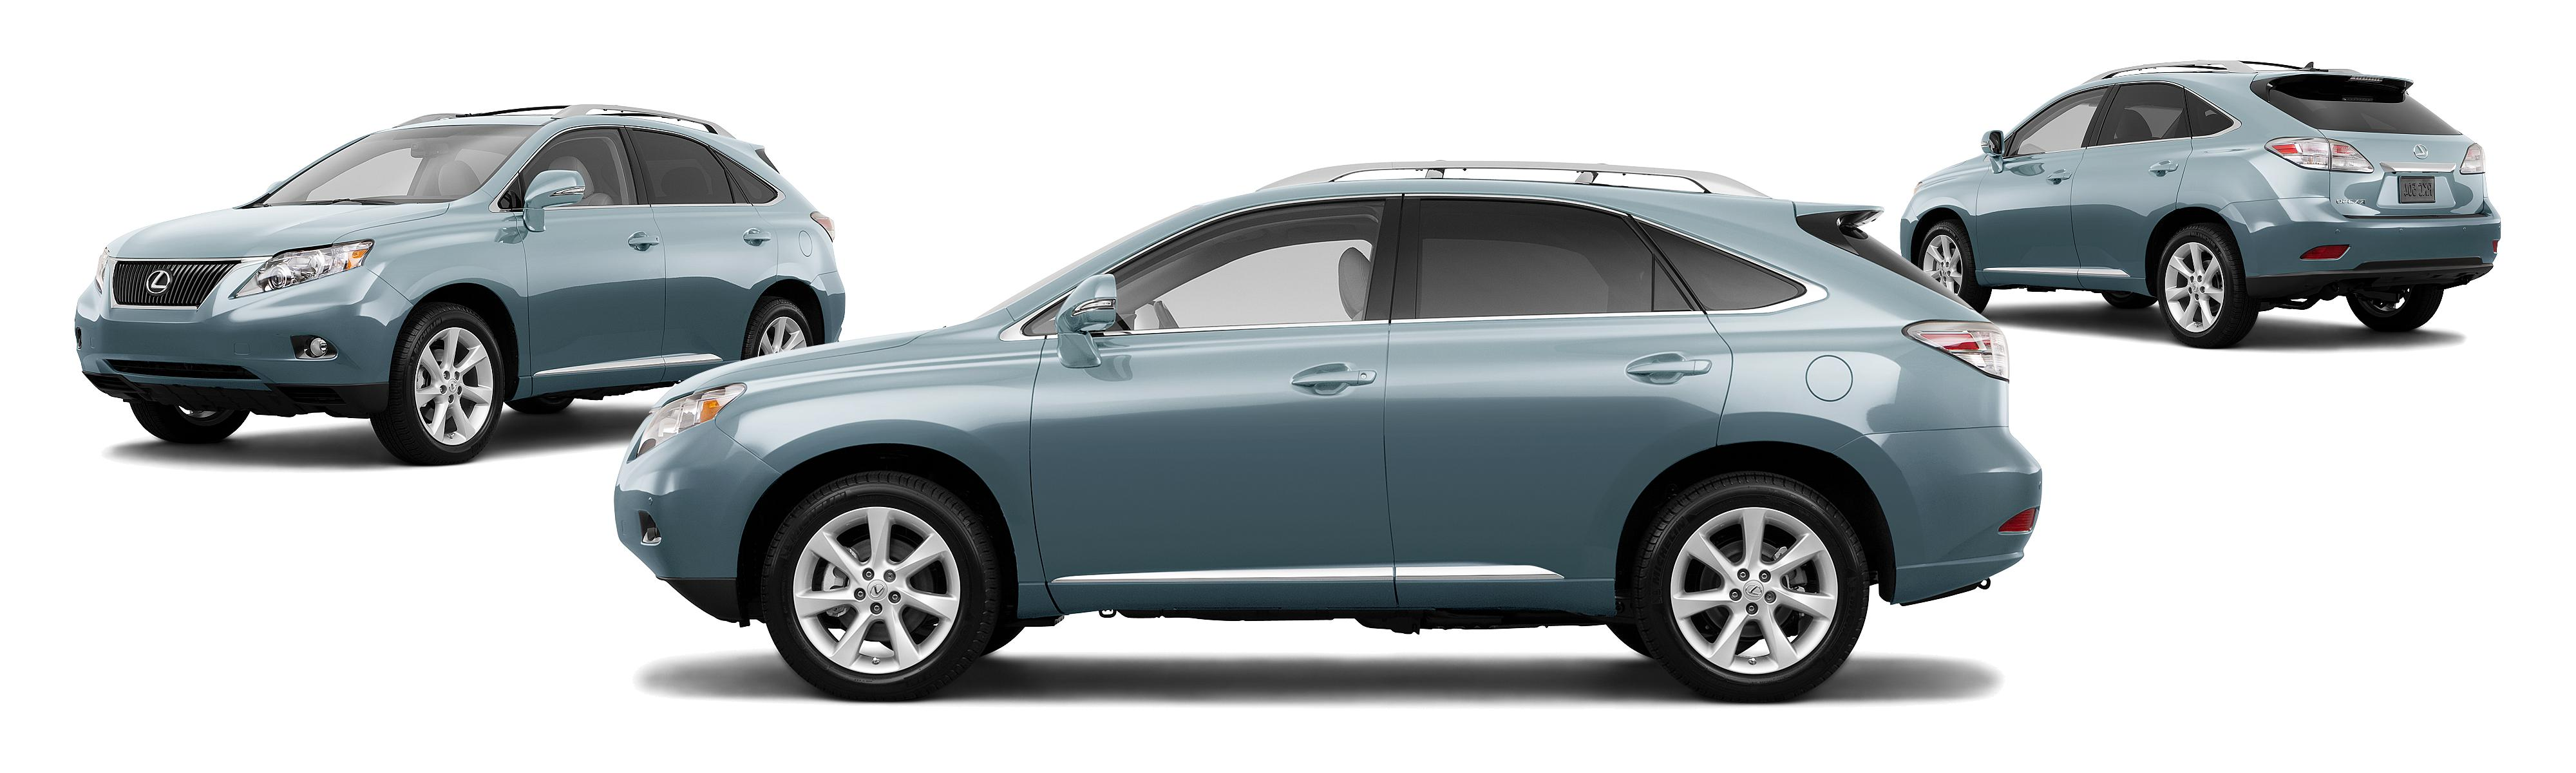 hma rx auto sales for vehicles sale package lexus sportdesign img